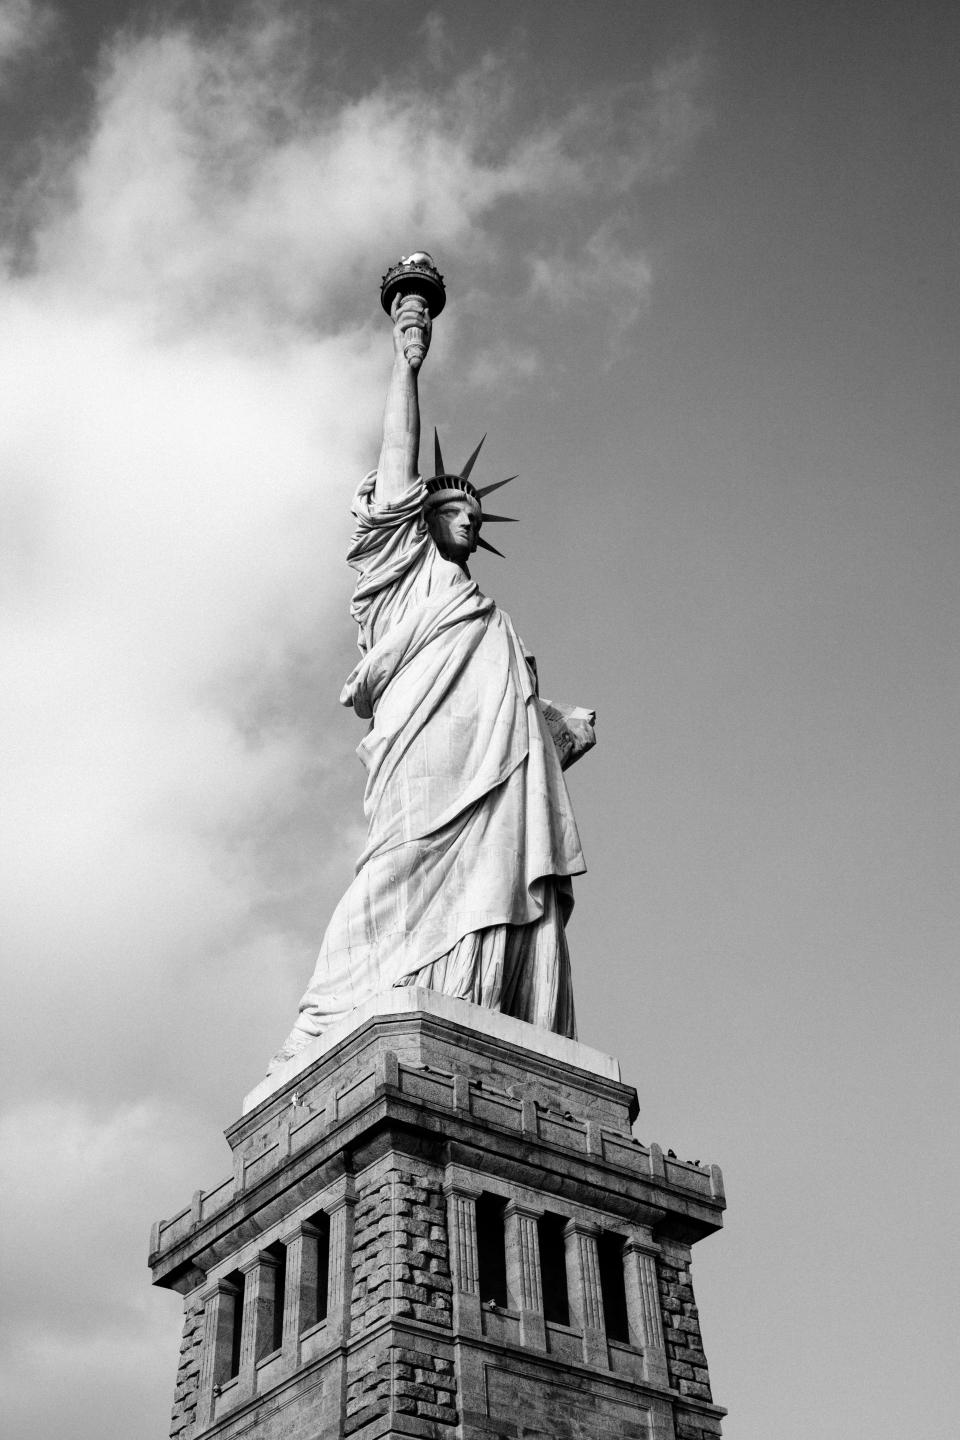 Statue of liberty architecture New York USA sky black and white